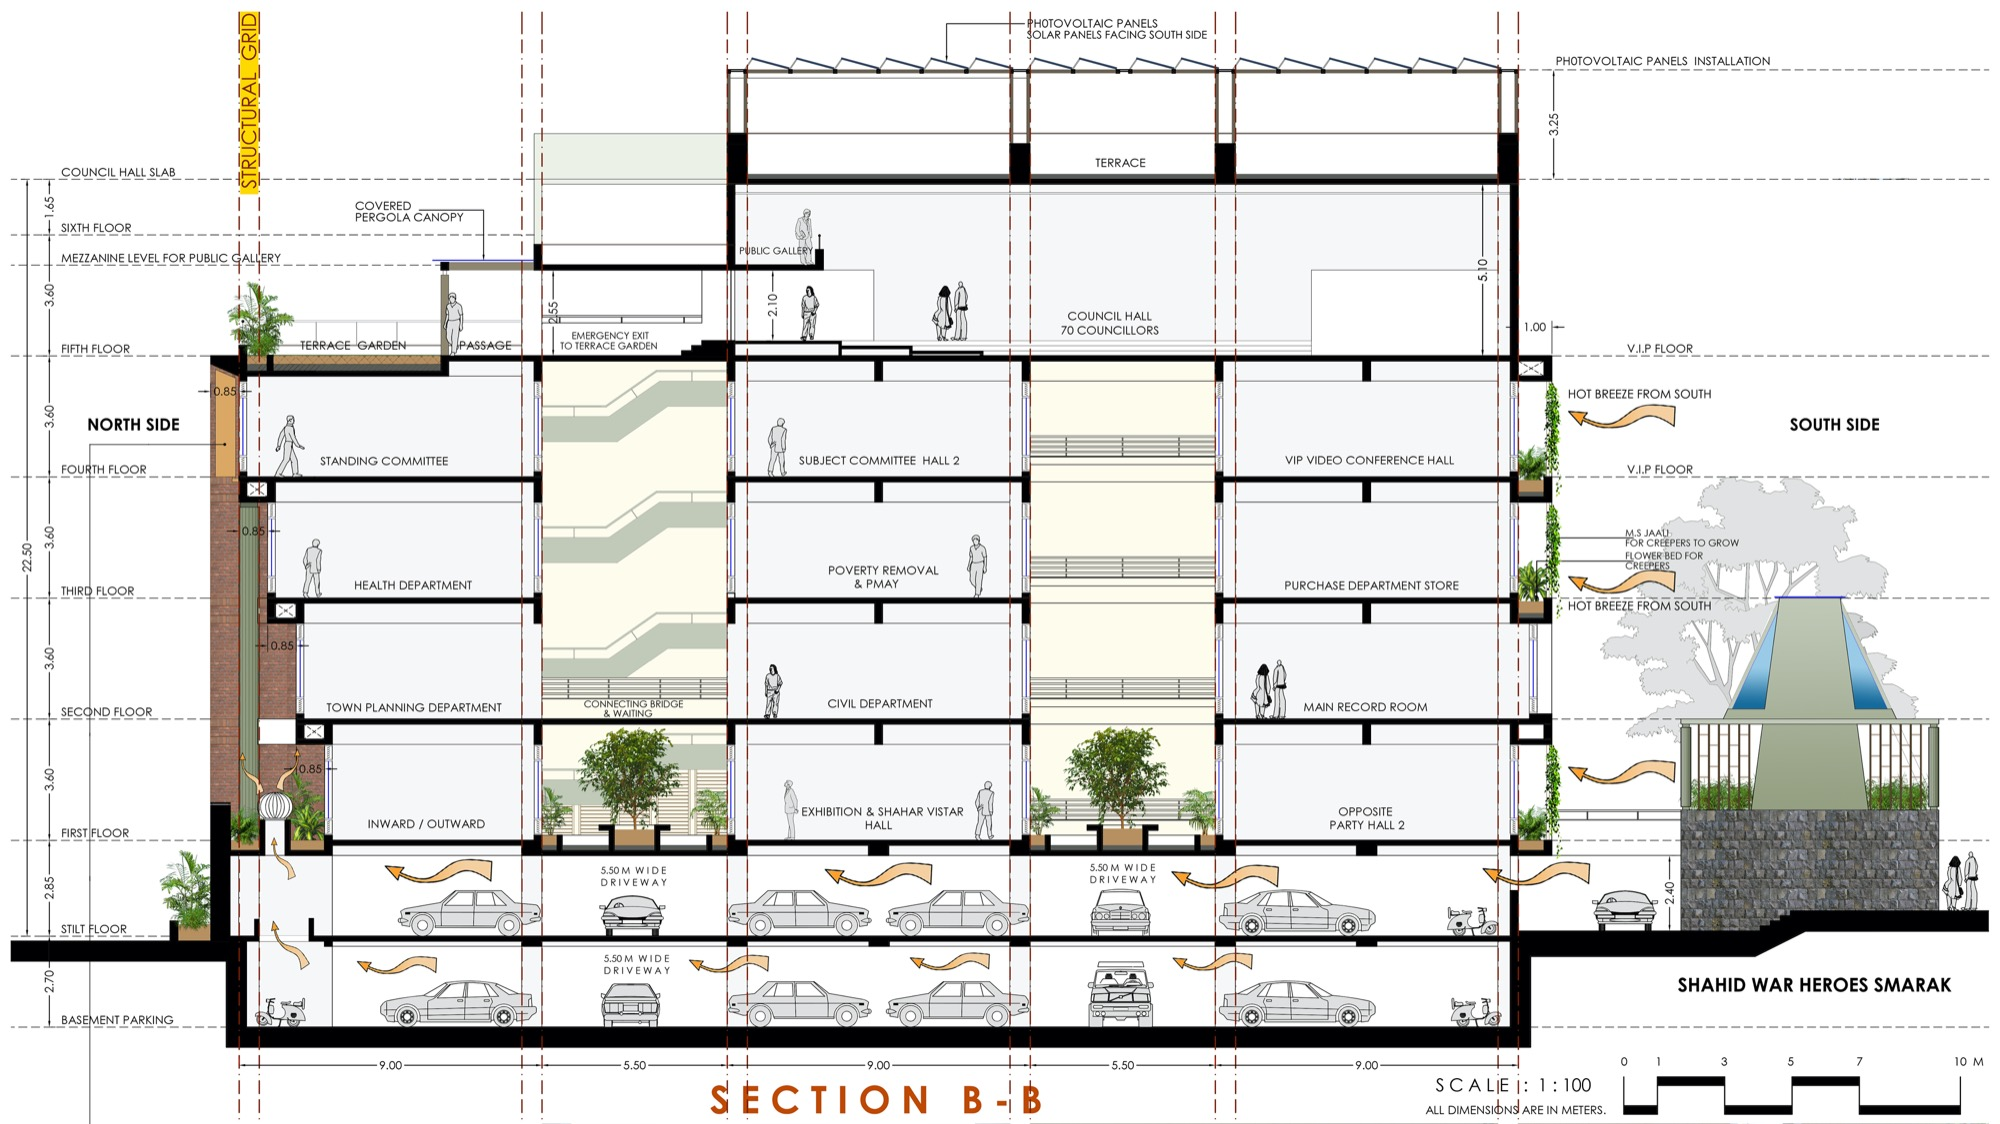 Satara Municipal Corporation, Competition Entry by KENARCH Architects, Pune 58